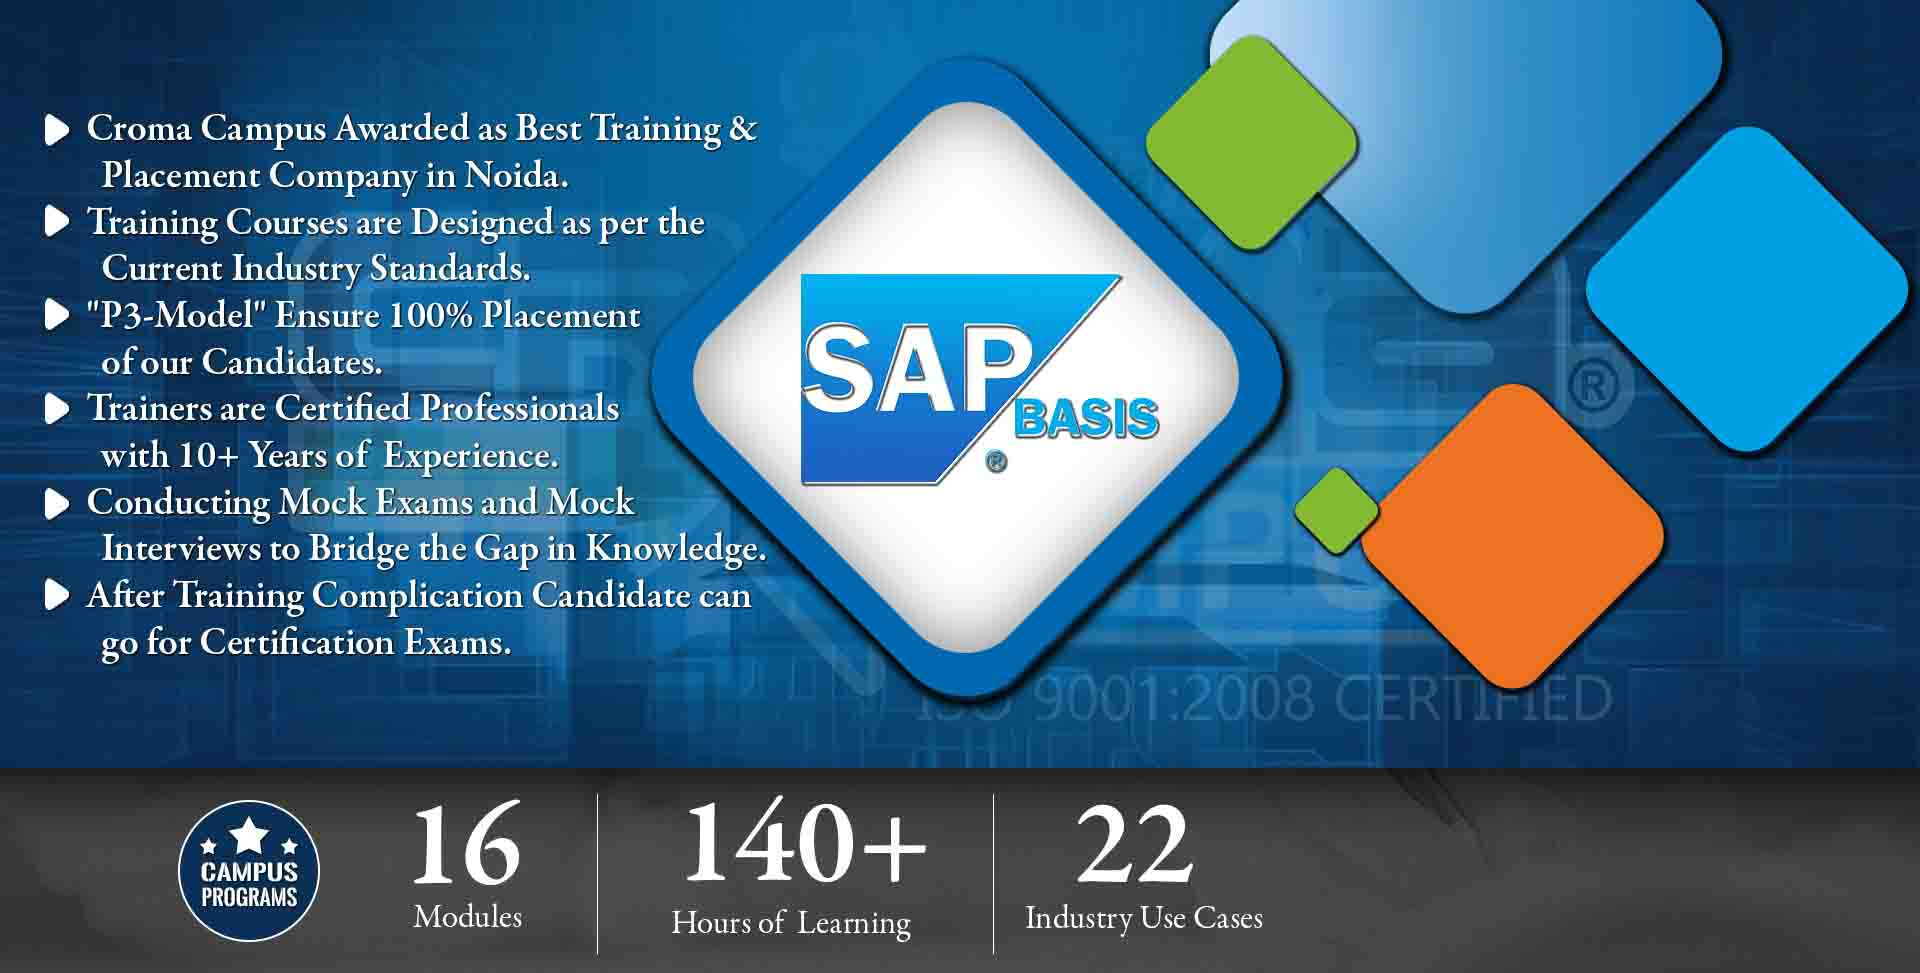 SAP Basis Training in Noida- Croma Campus